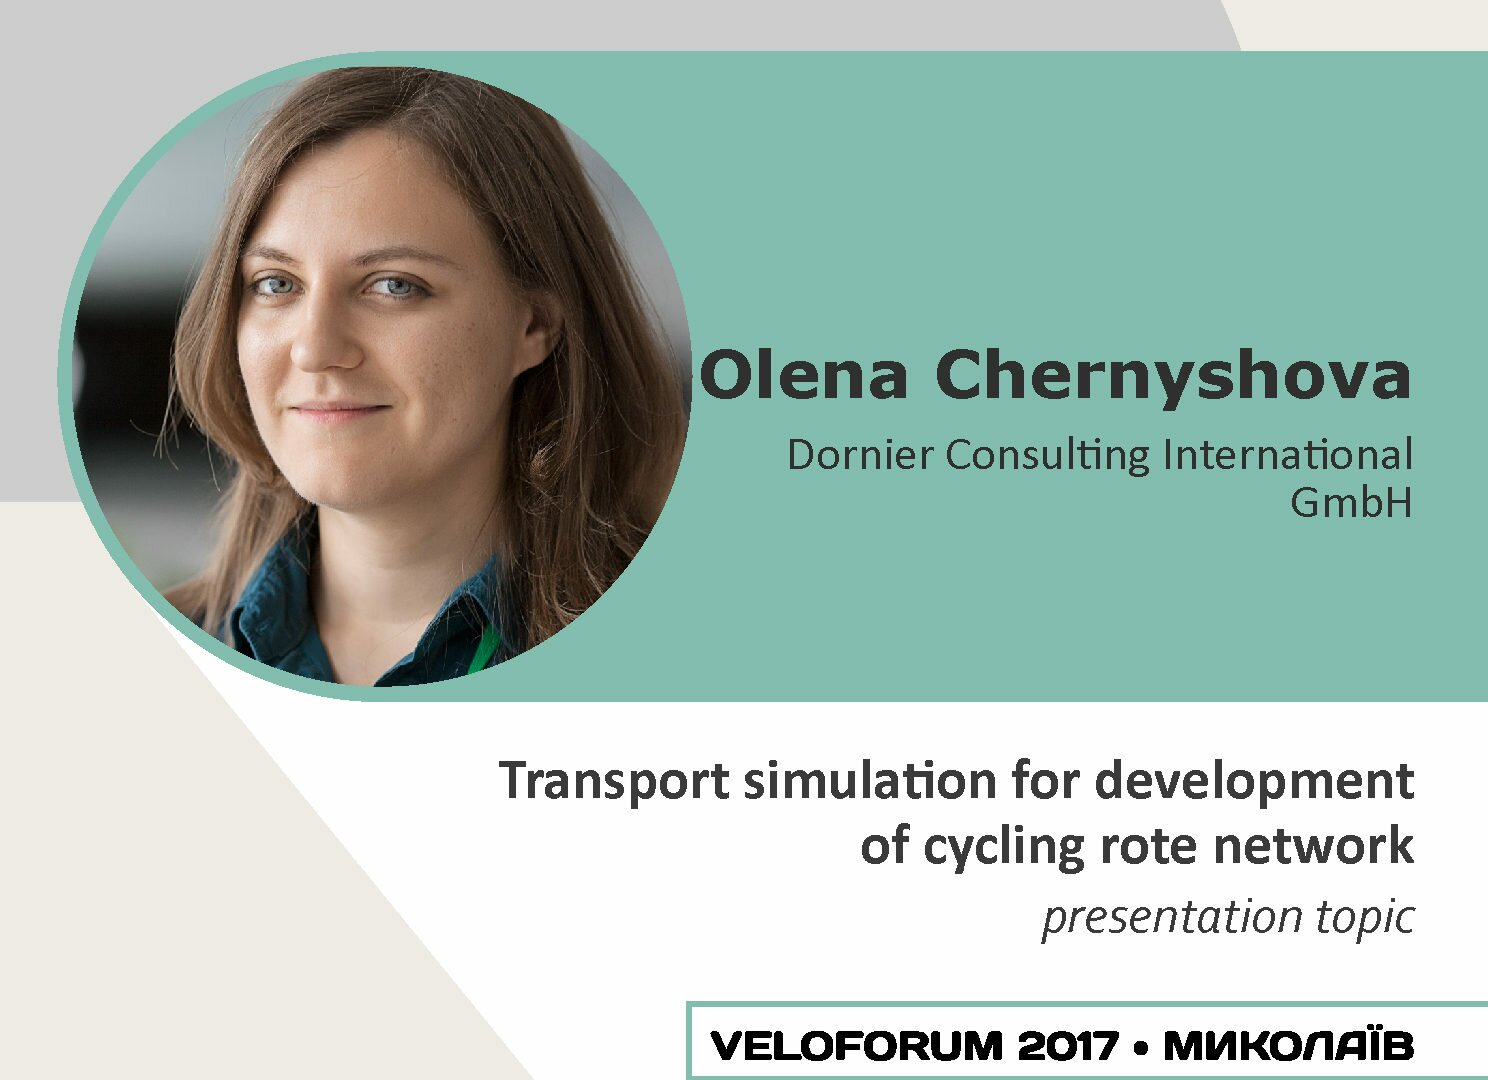 Veloforum 2017 Speakers. Olena Chernyshova